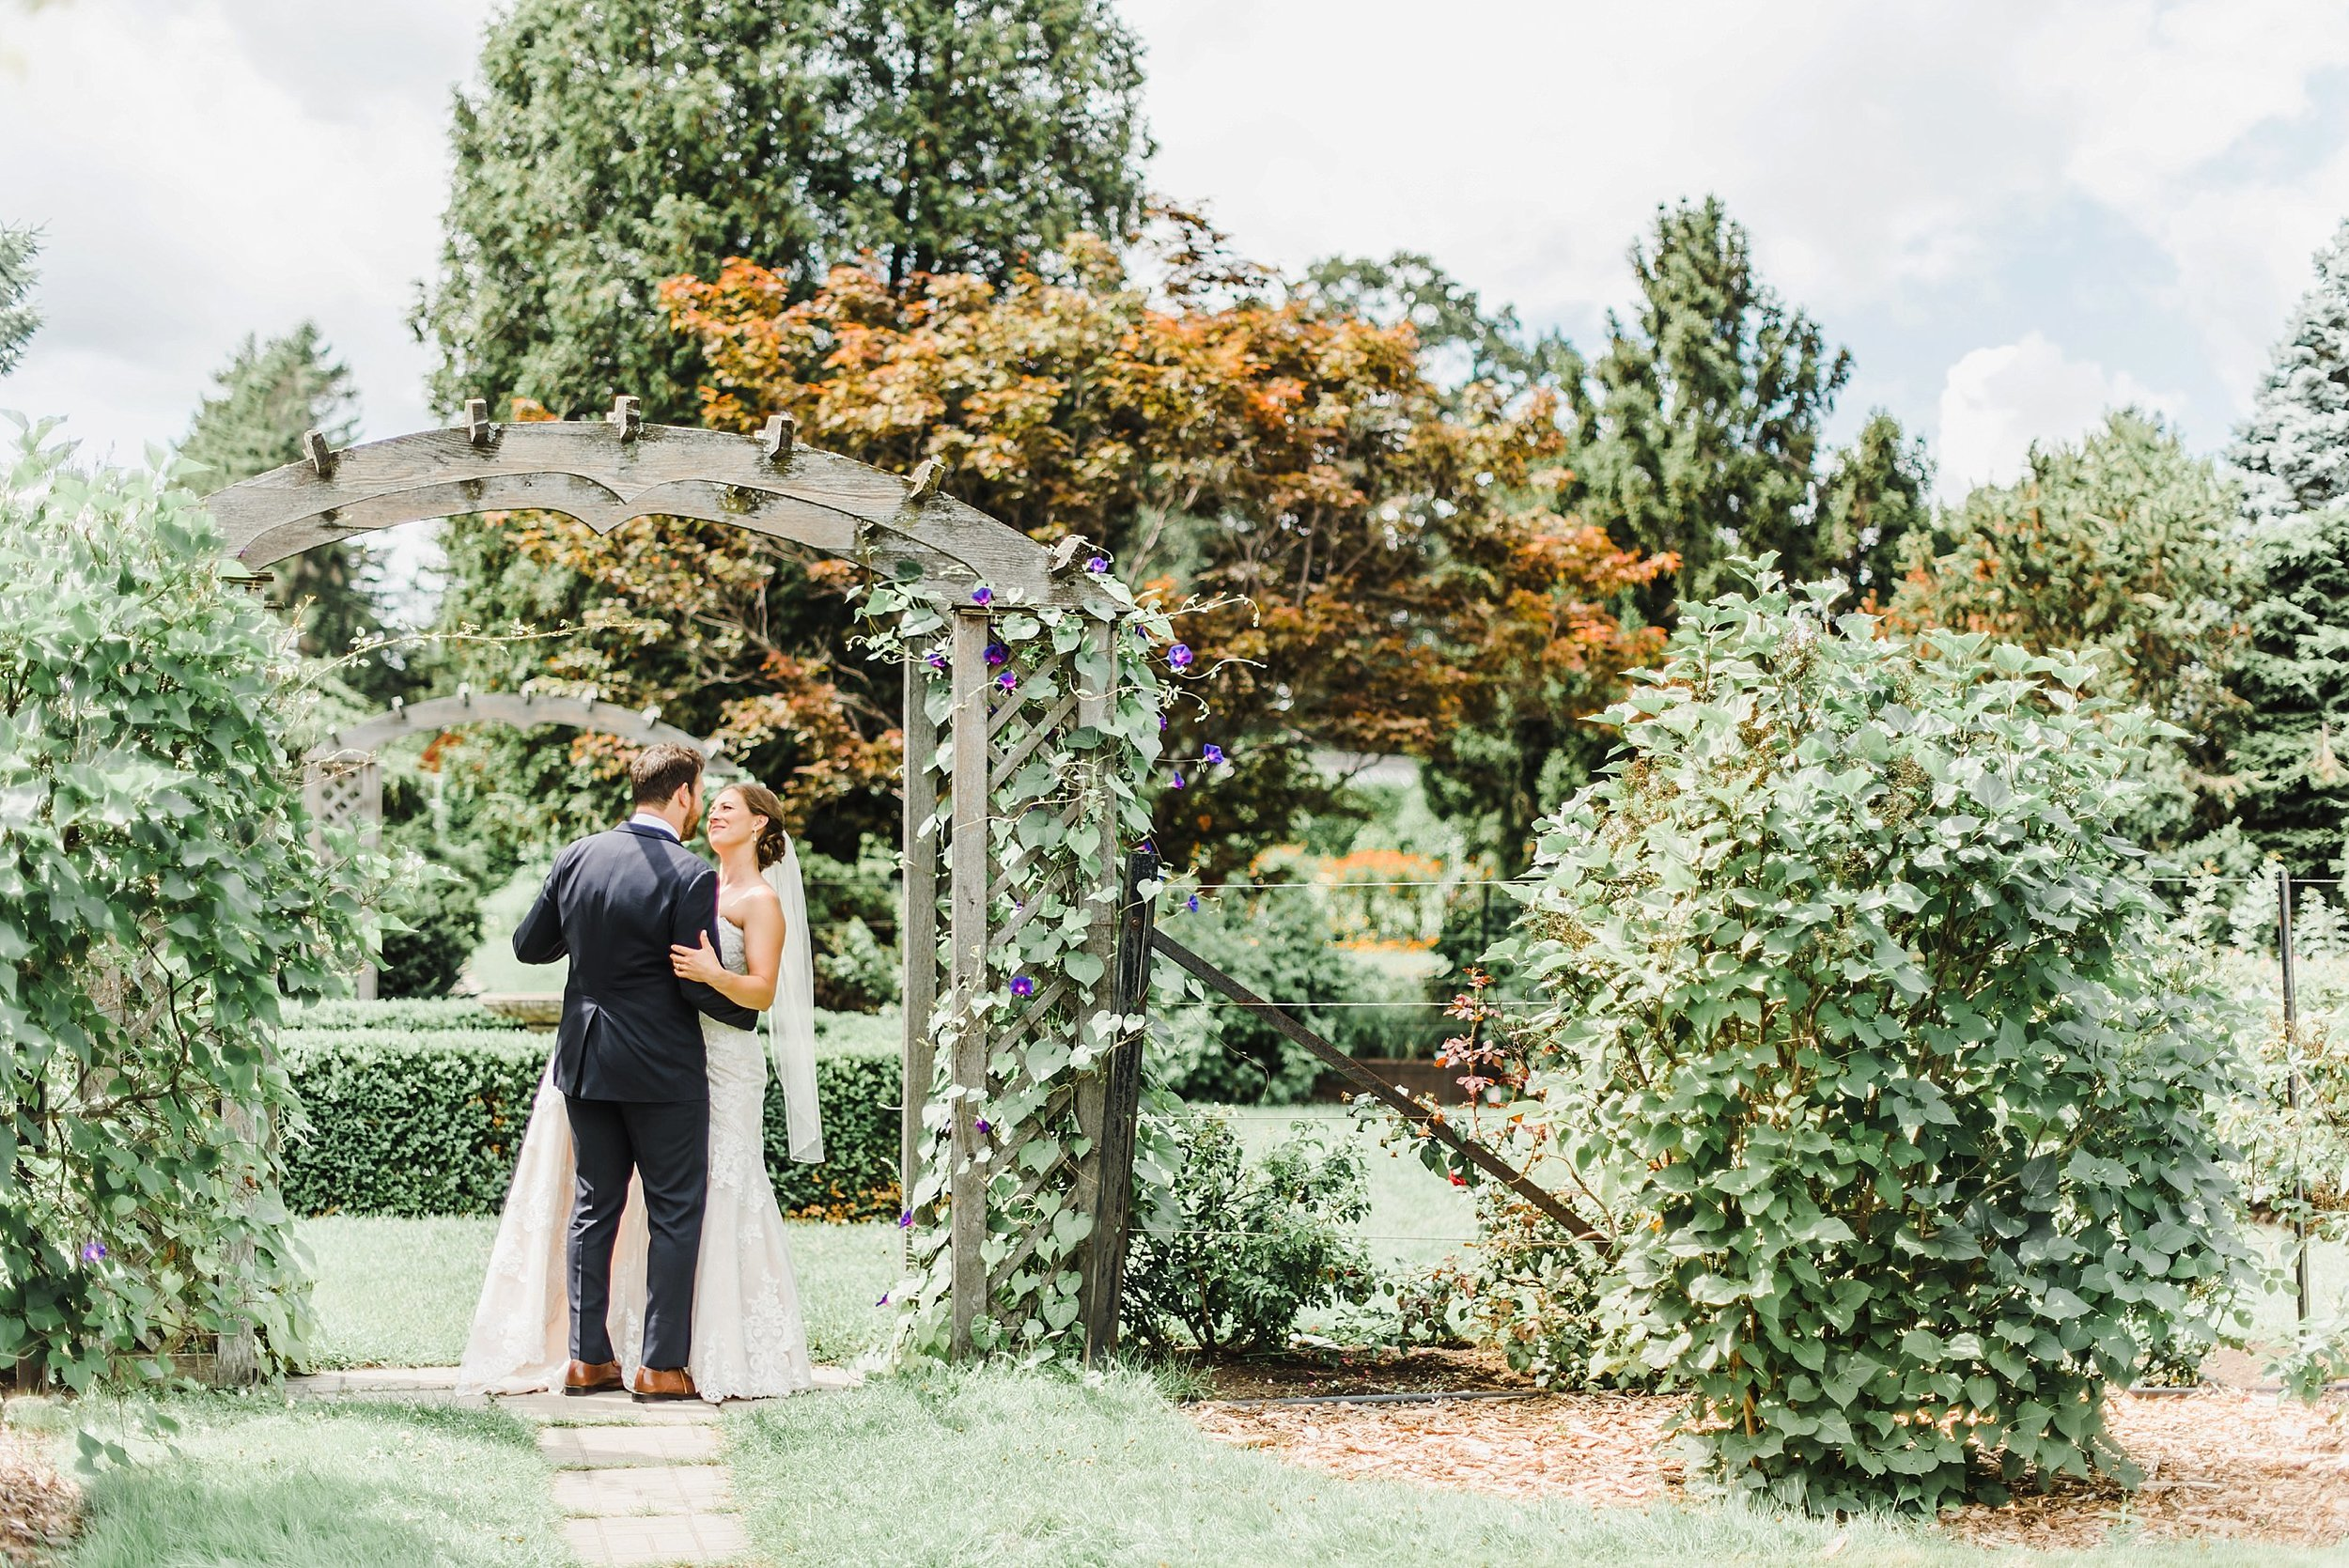 These two love nature, so it made complete sense to take their first round of photos as husband and wife amidst the flora and fauna!